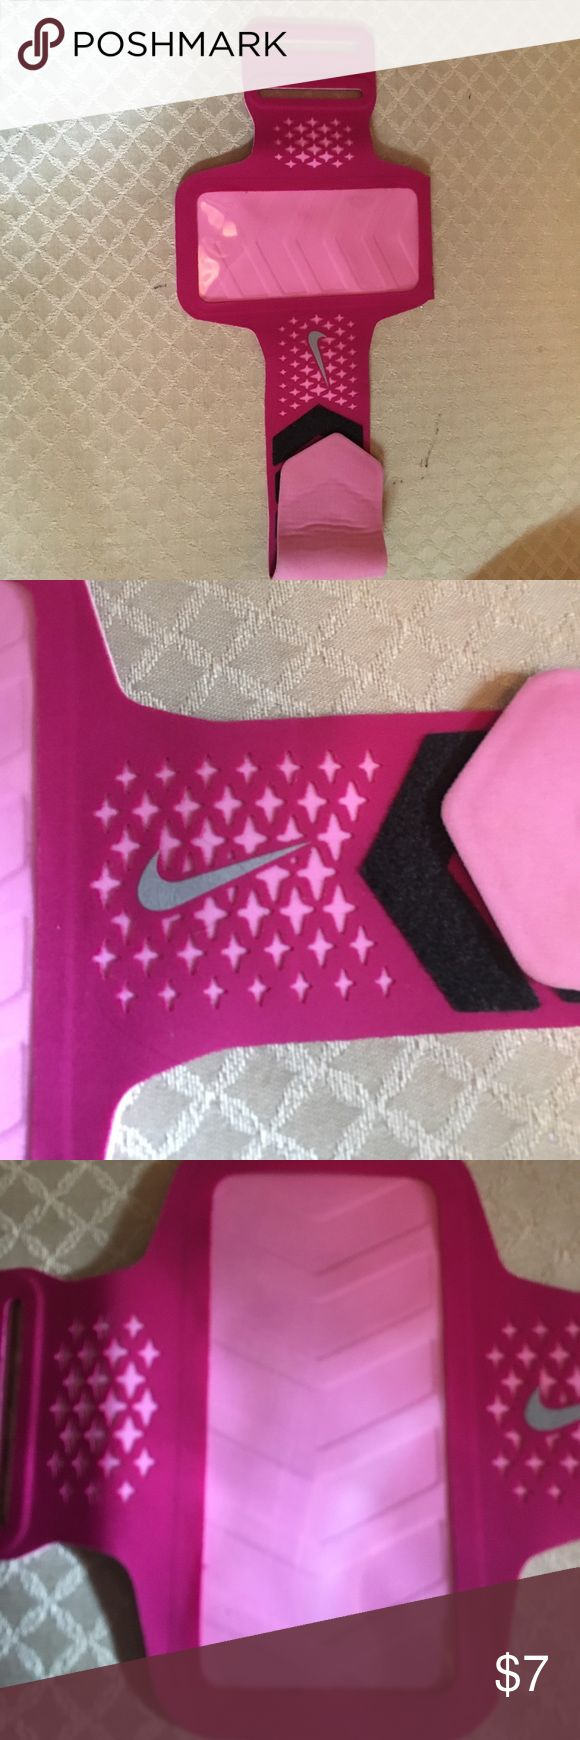 Nike pink armband Nike pink armband great condition fits must size phones Nike Accessories Tablet Cases